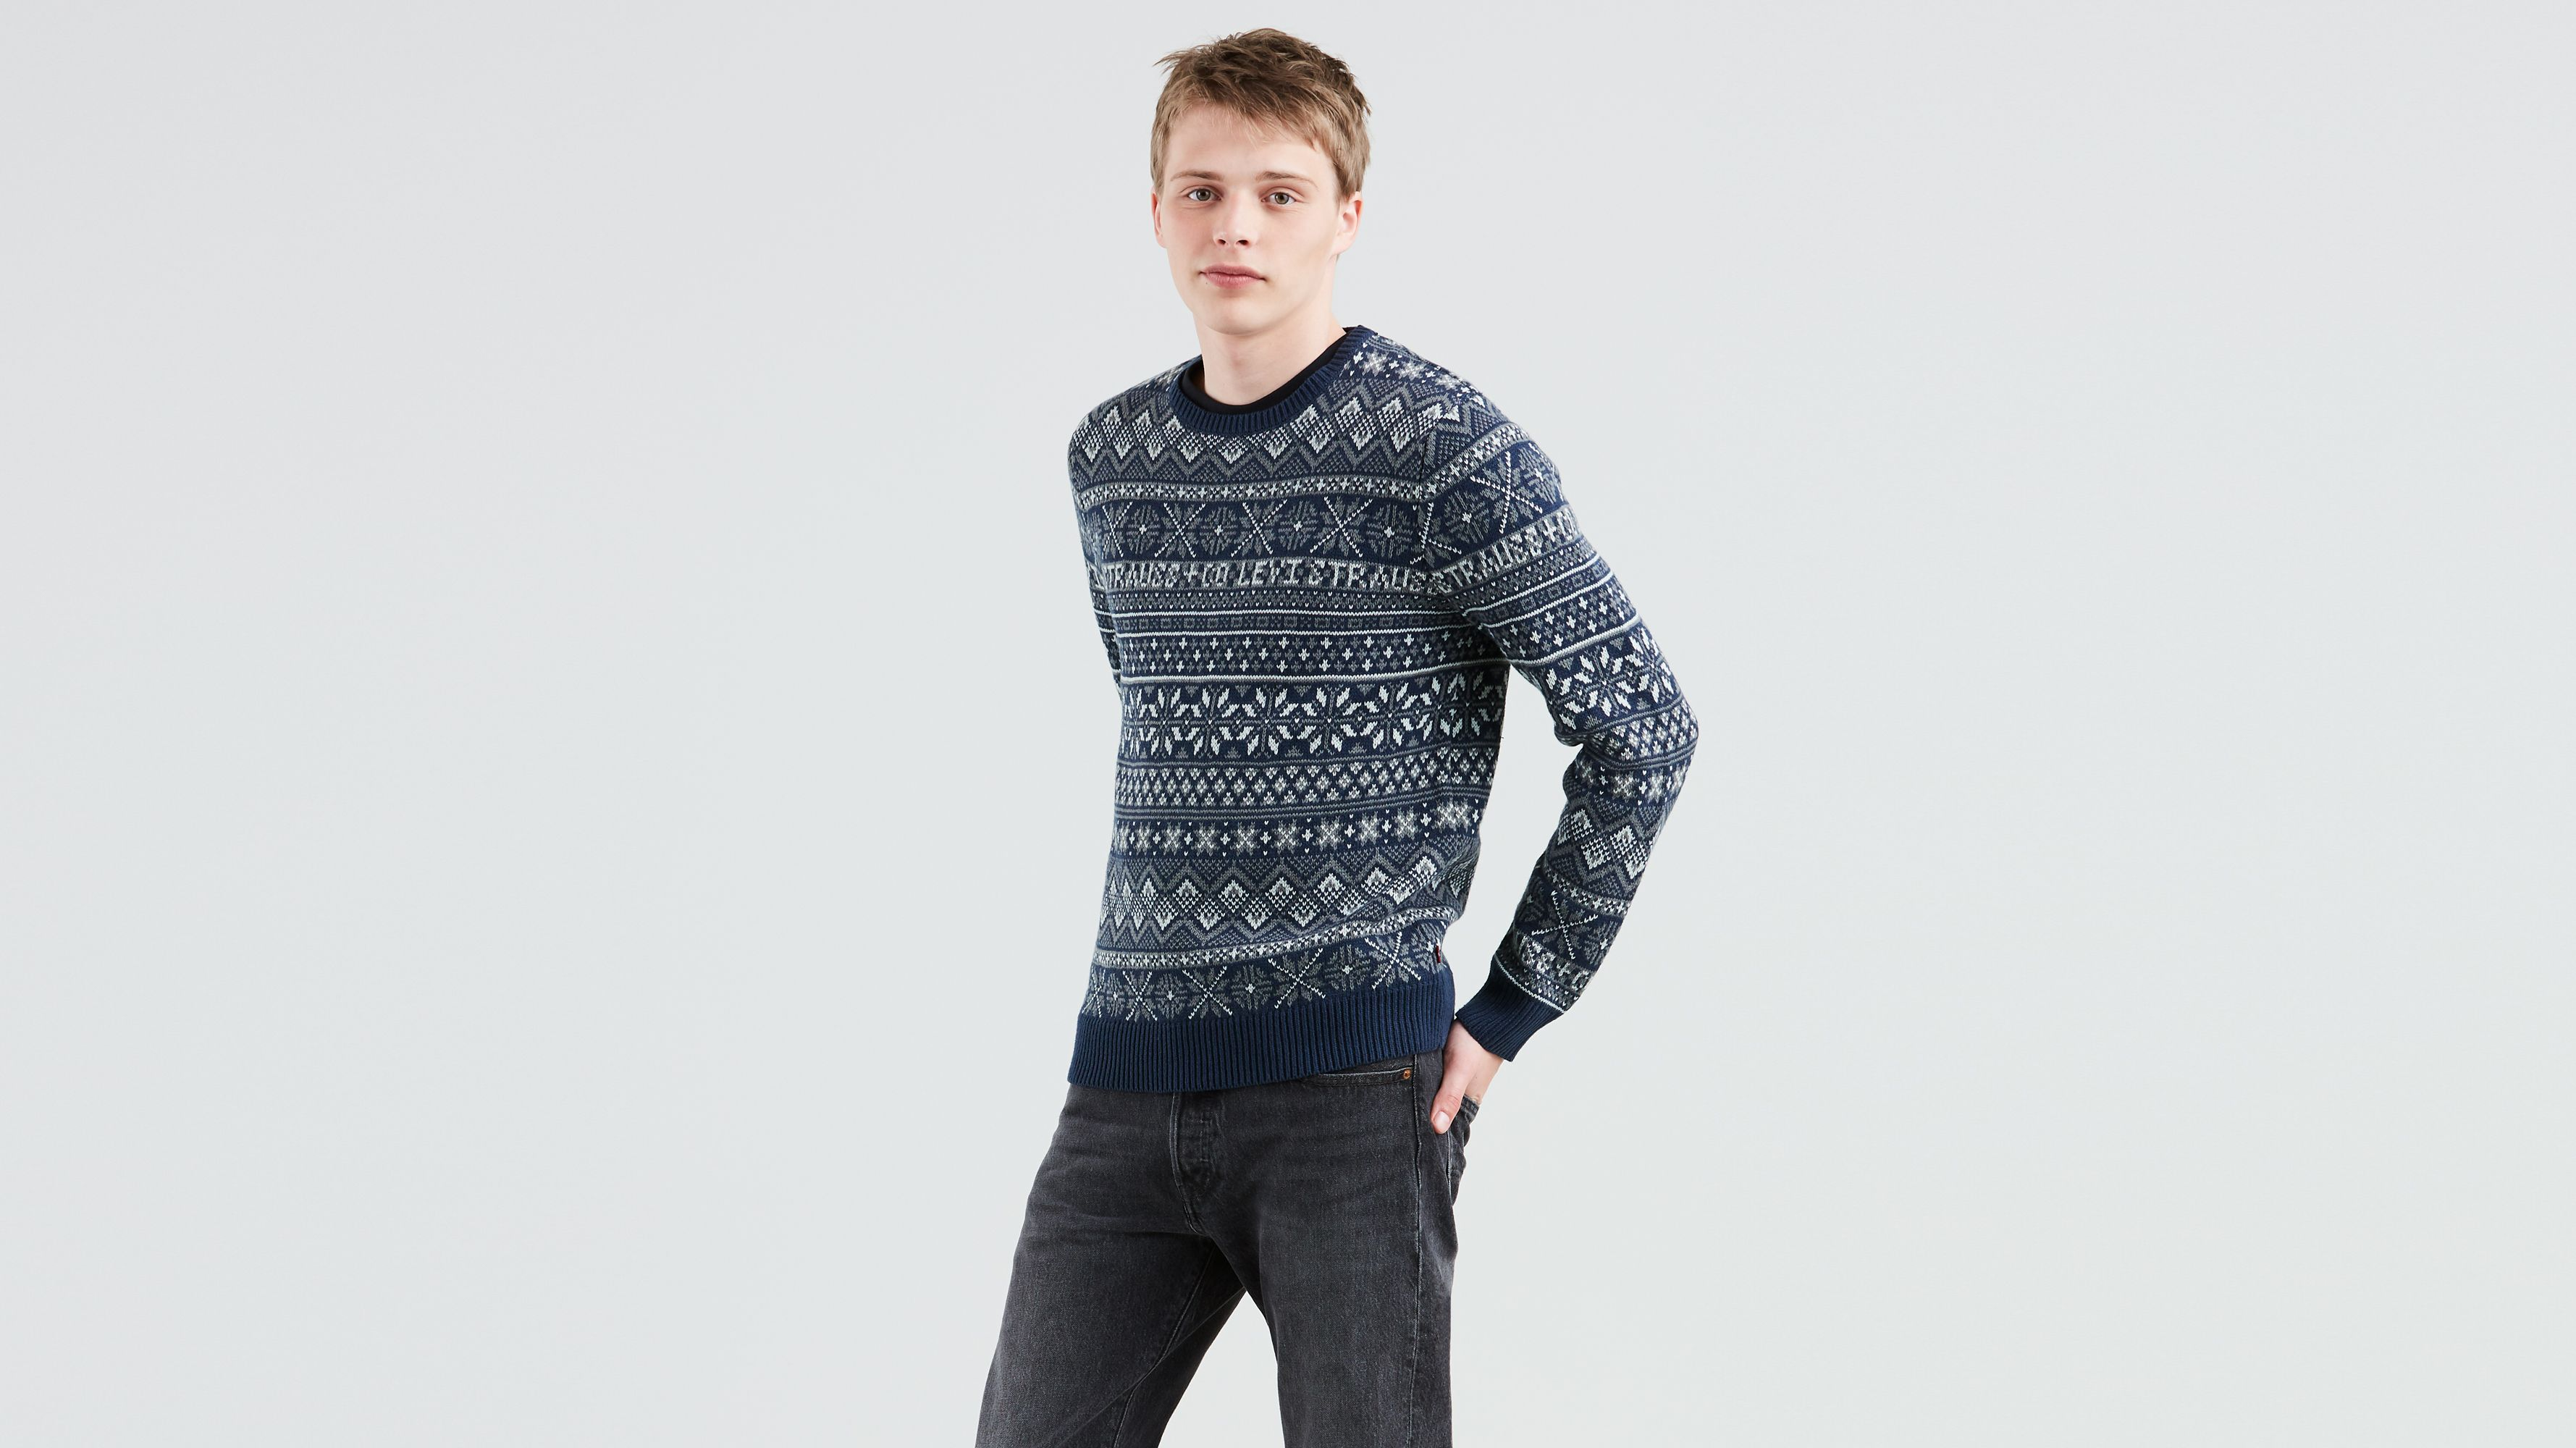 Classic Sweater Gr Sweaters Holiday Men Levi's® Clothing Sweatshirts amp; rFqrxS4